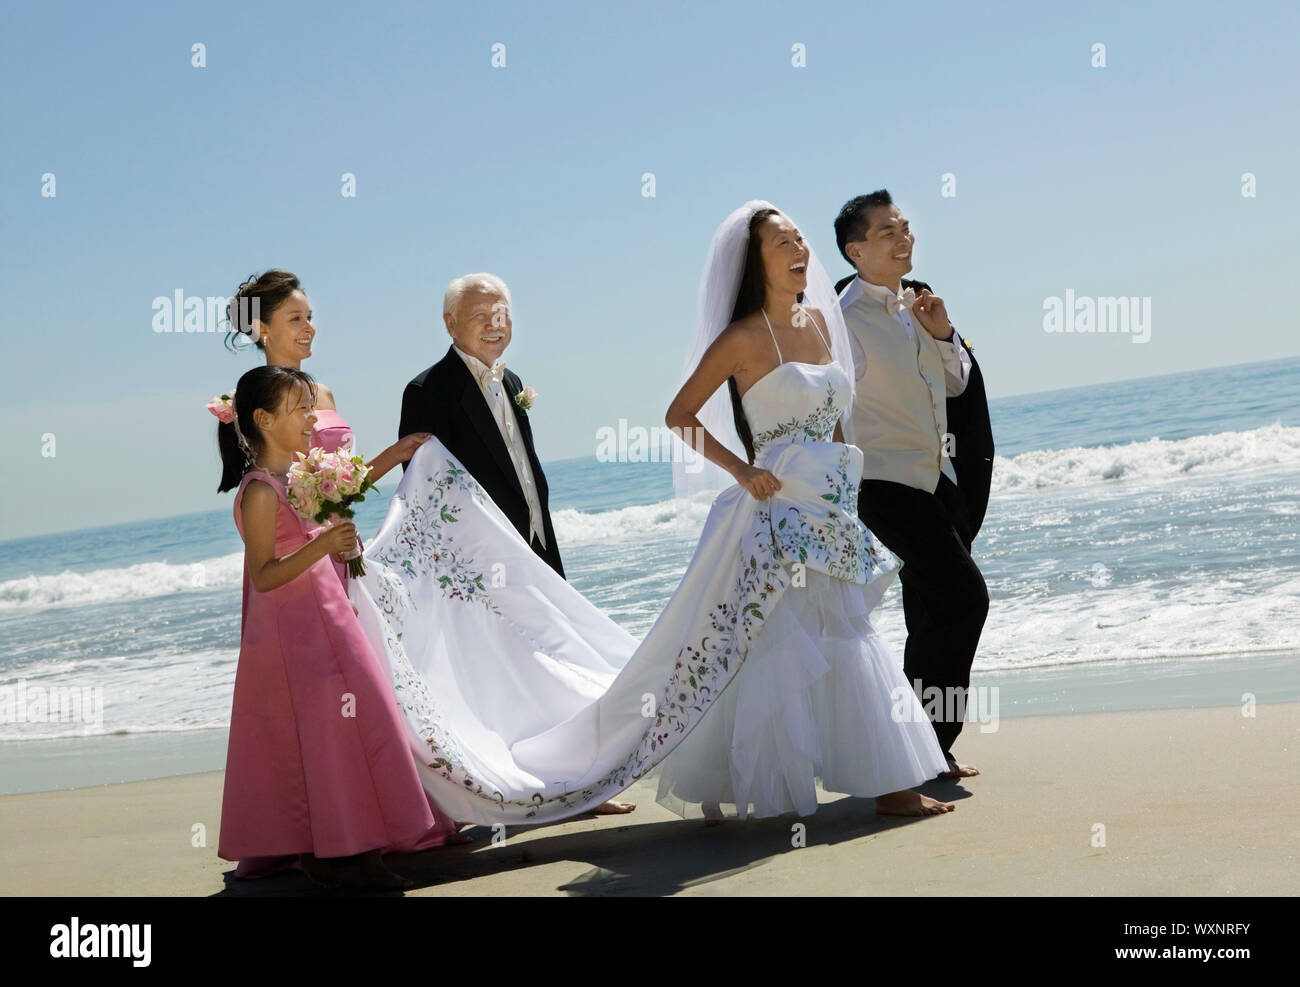 Bride and Groom With Family on Beach Stock Photo